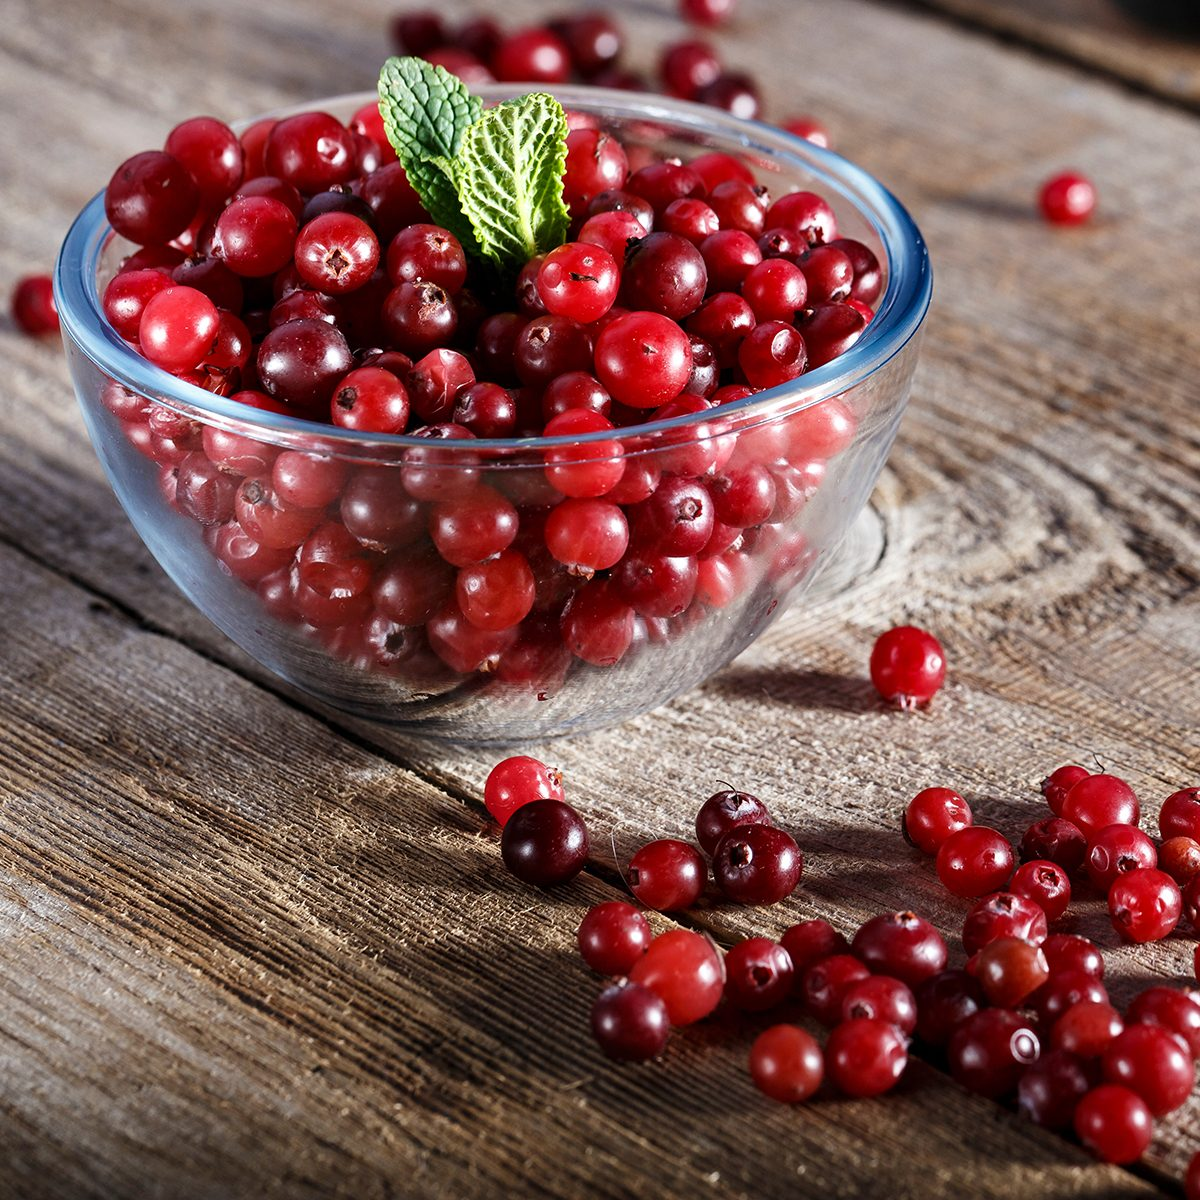 raw fresh cranberries in a plate on a wooden table.